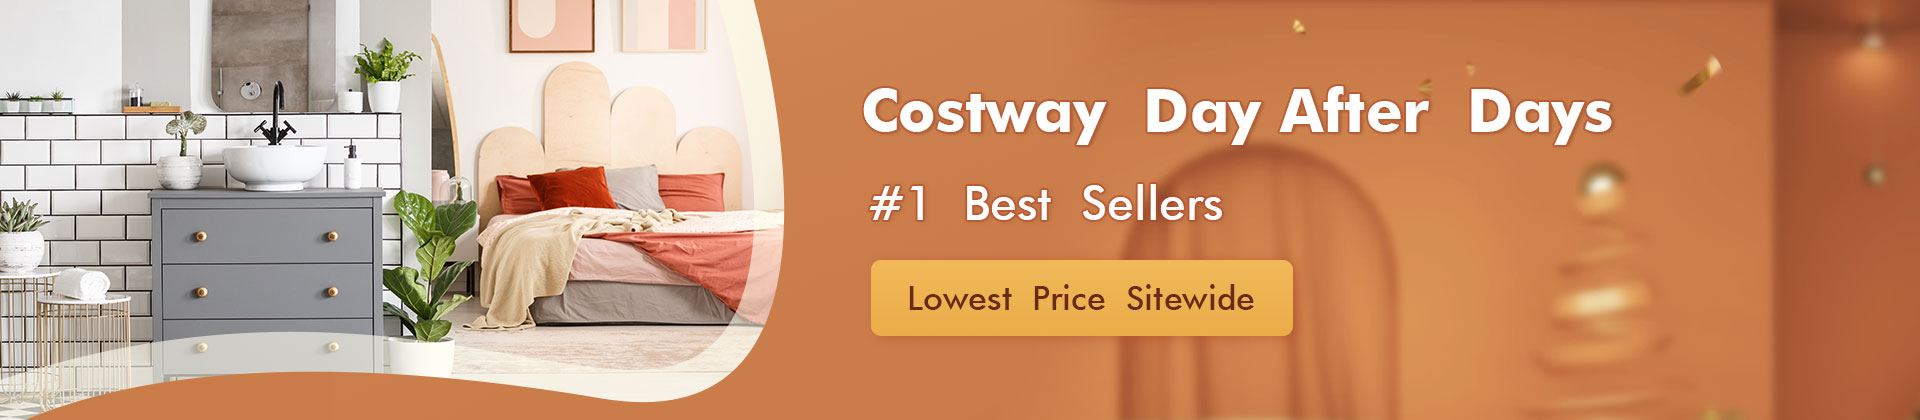 User friendly best seller furniture and decor